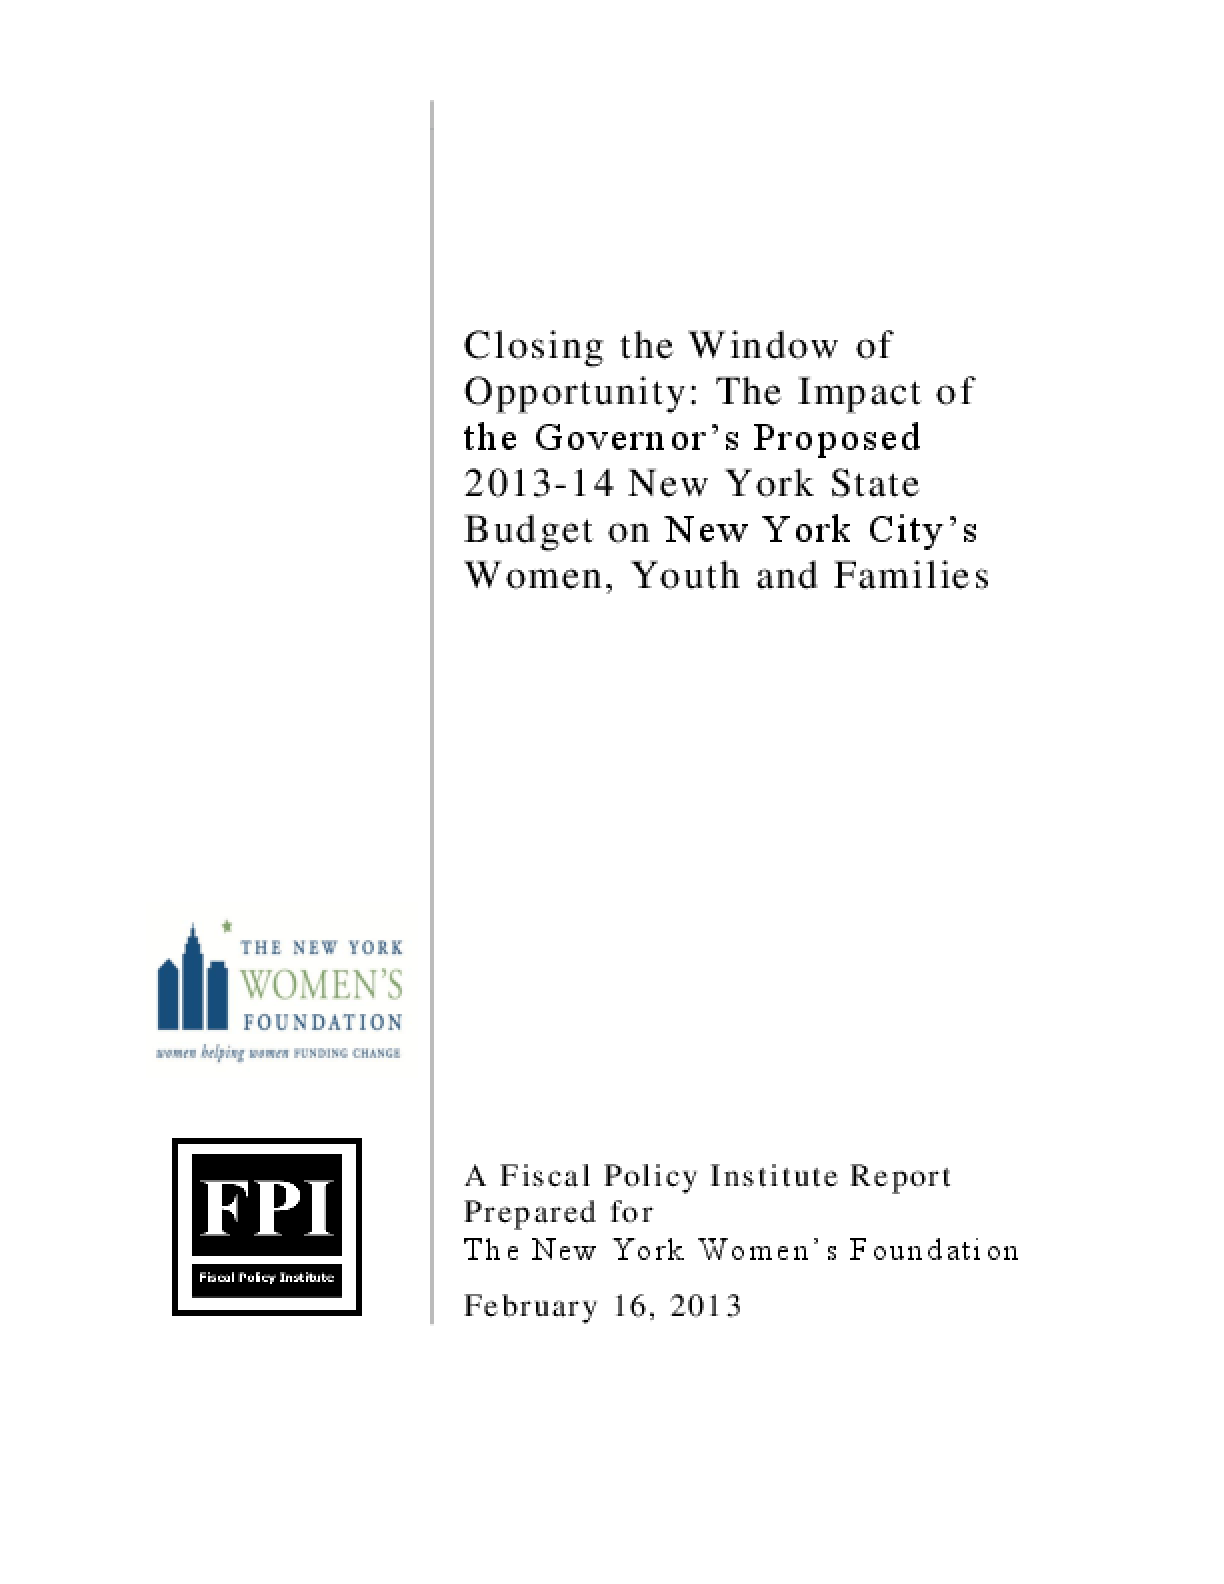 Closing the Window of Opportunity: The Impact of the Governor's Proposed 2013-14 New York State Budget on New York City's Women, Youth and Families